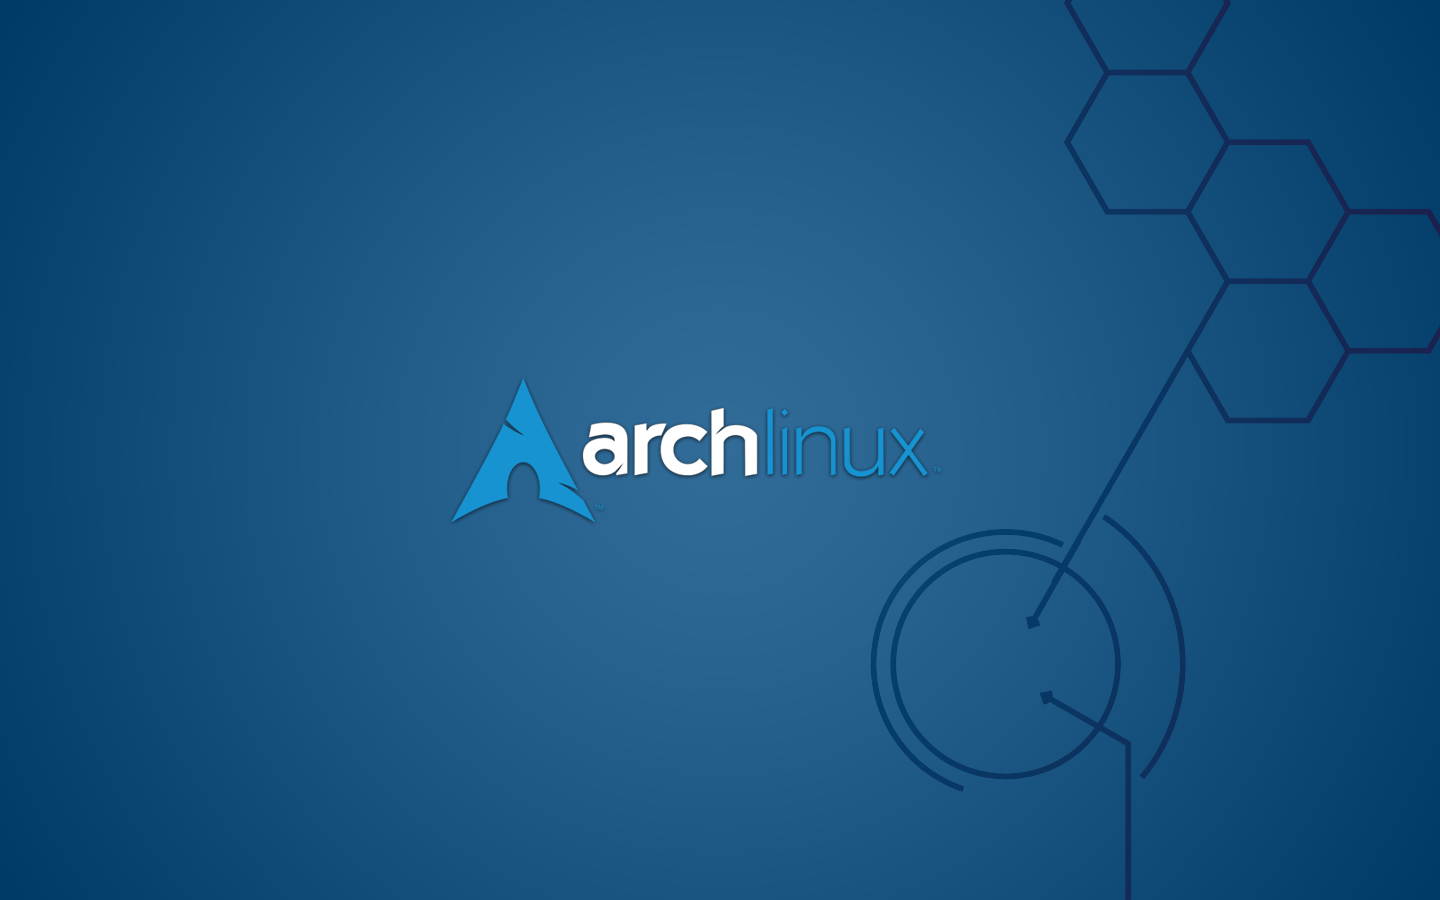 Arch Linux wallpaper.